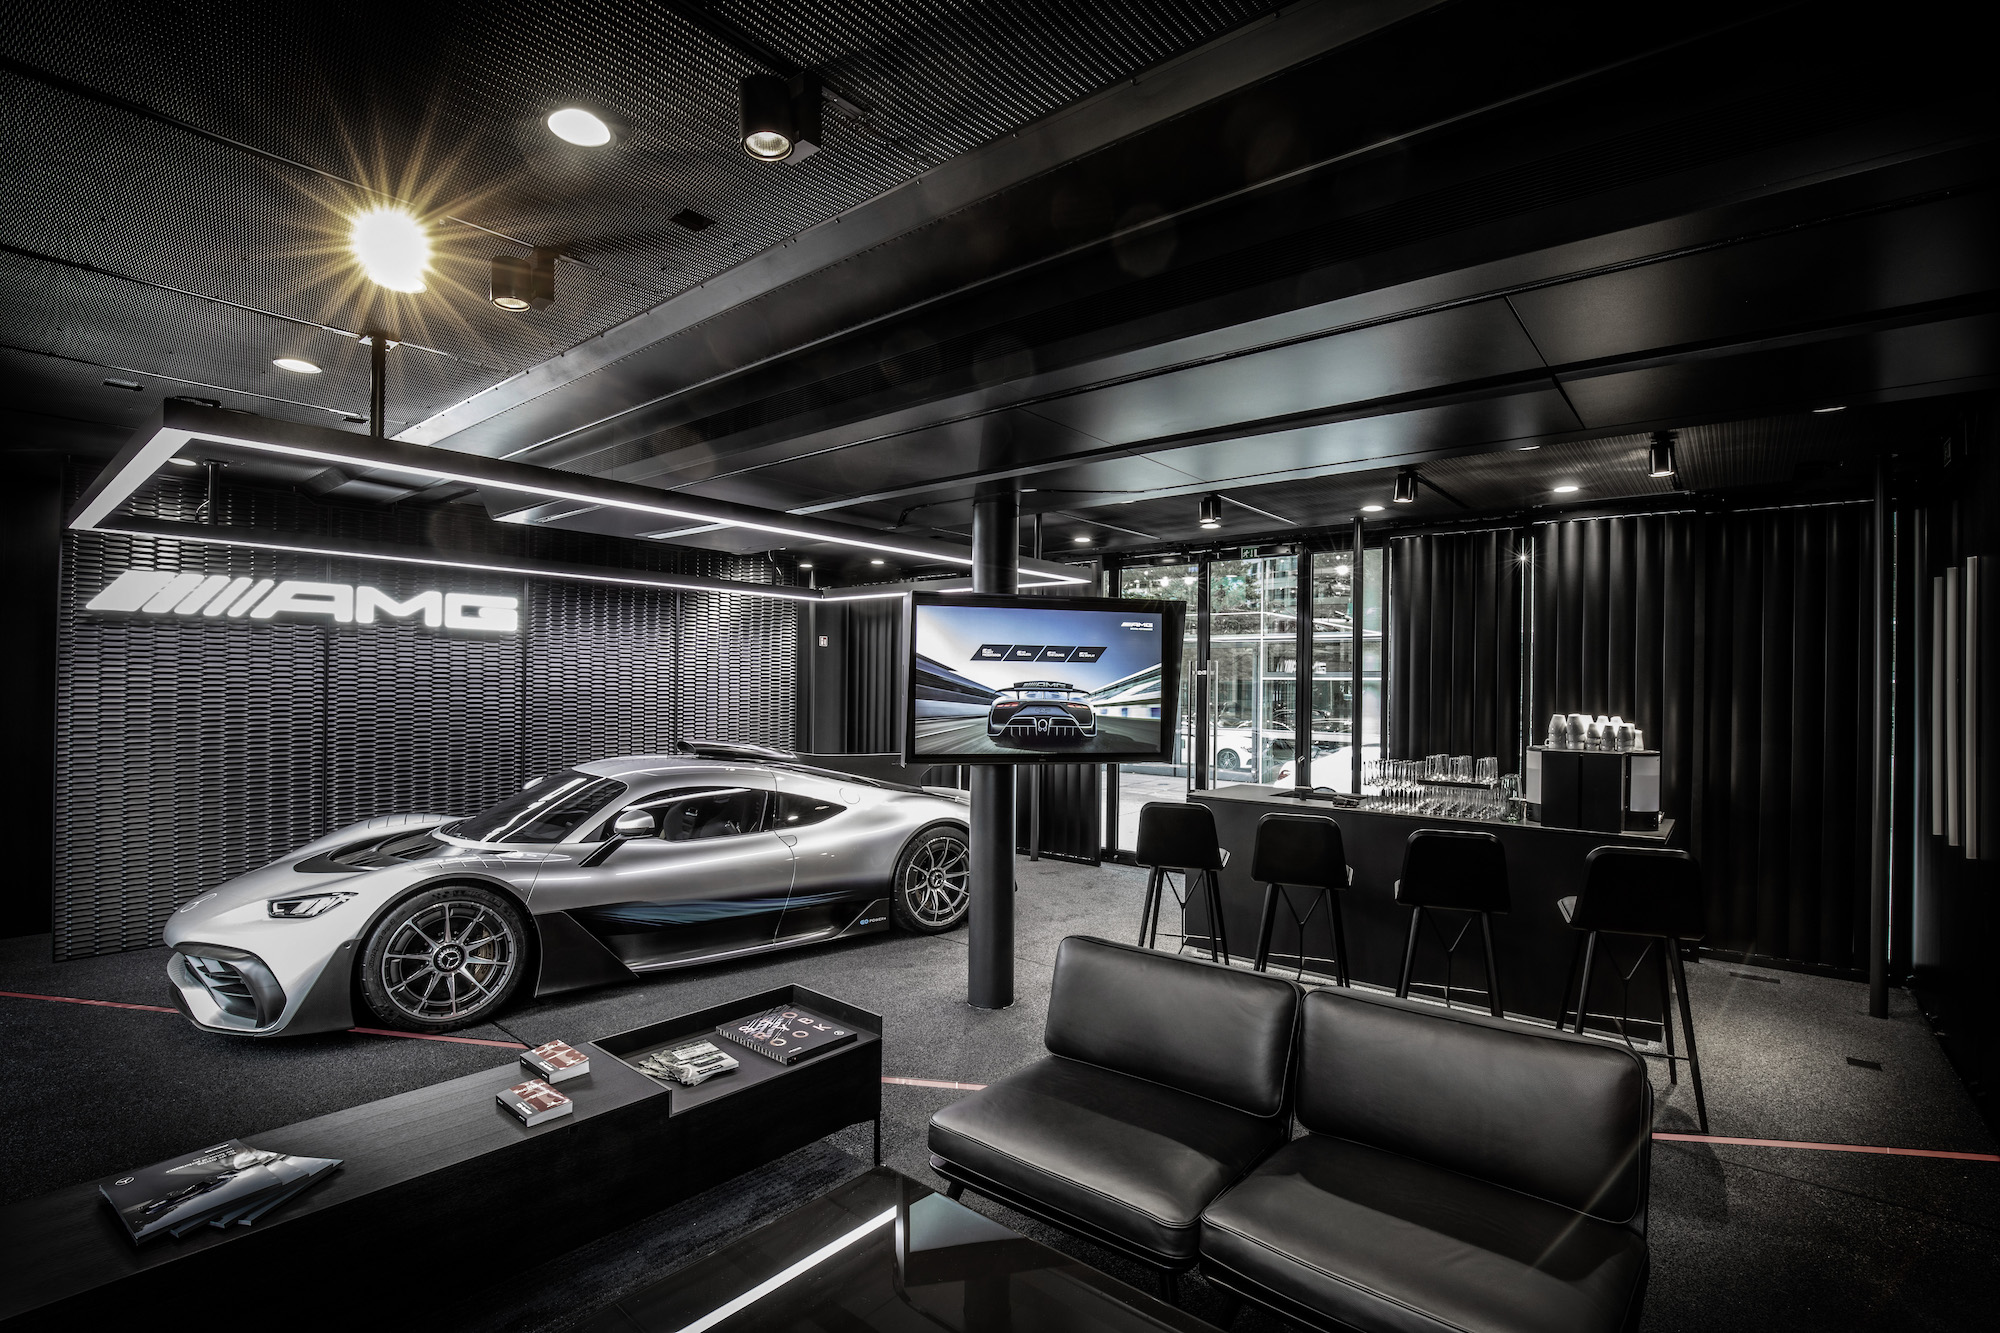 Hypercar to be called Mercedes-AMG ONE